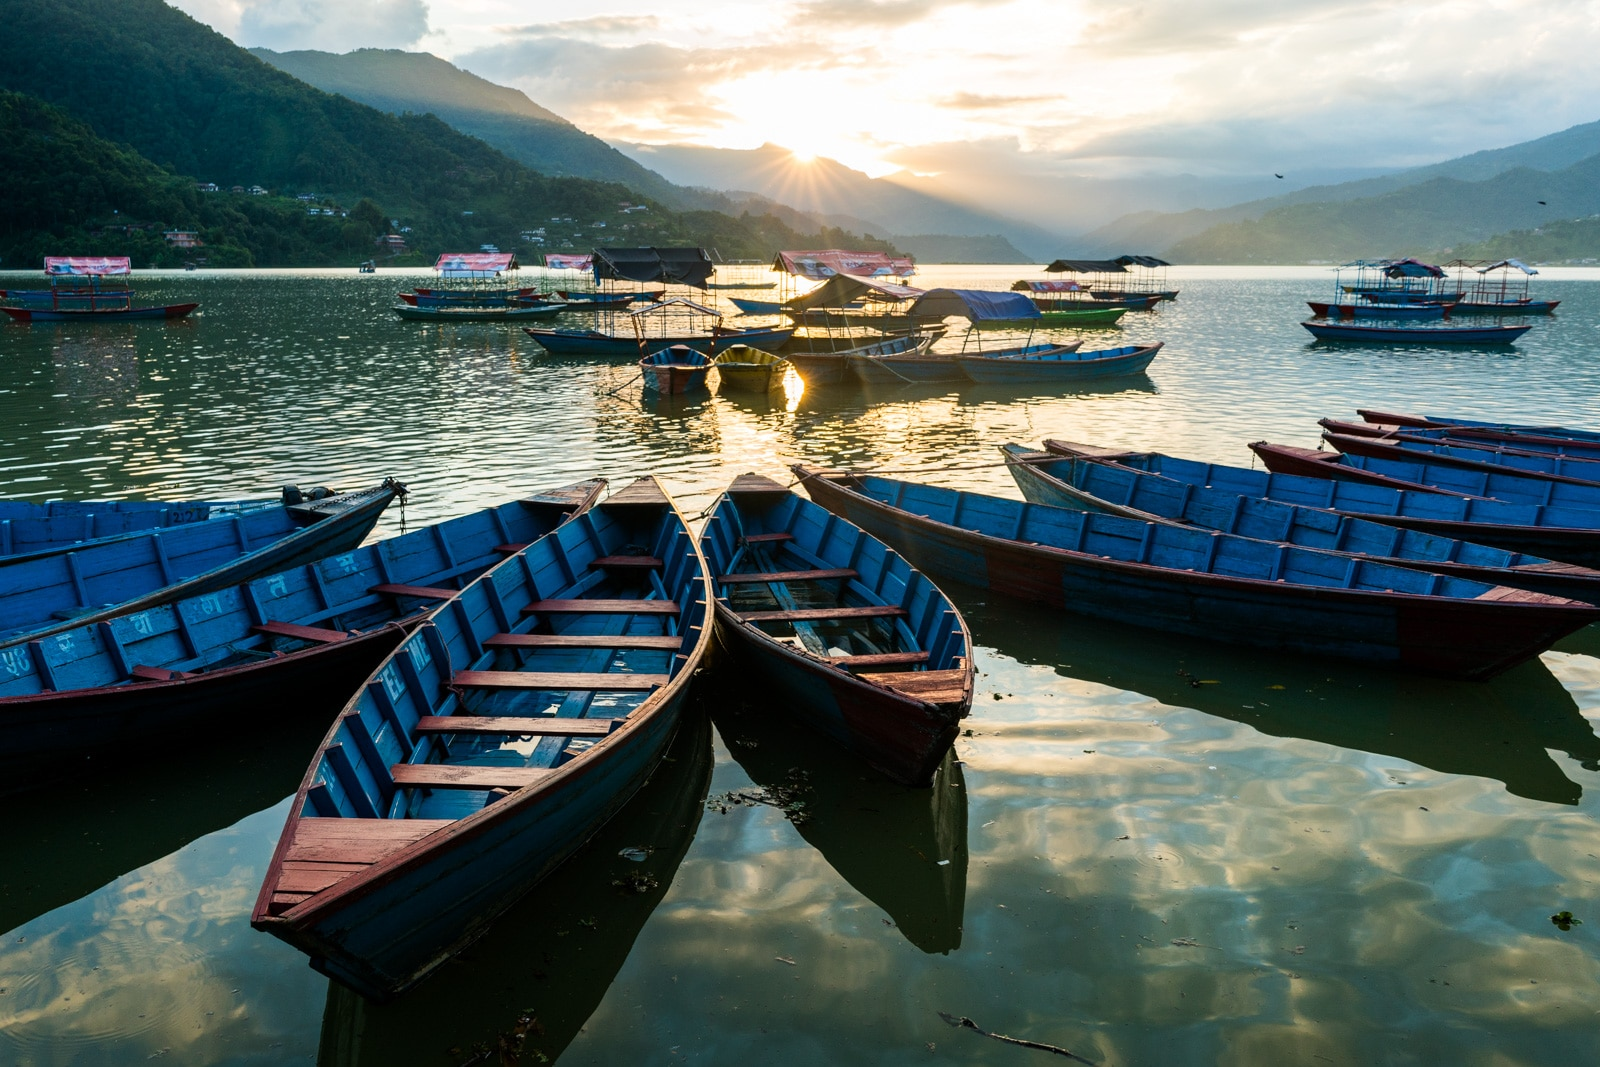 What it's like to travel in Nepal during monsoon - Blue boats on Phewa lake in Pokhara - Lost With Purpose travel blog